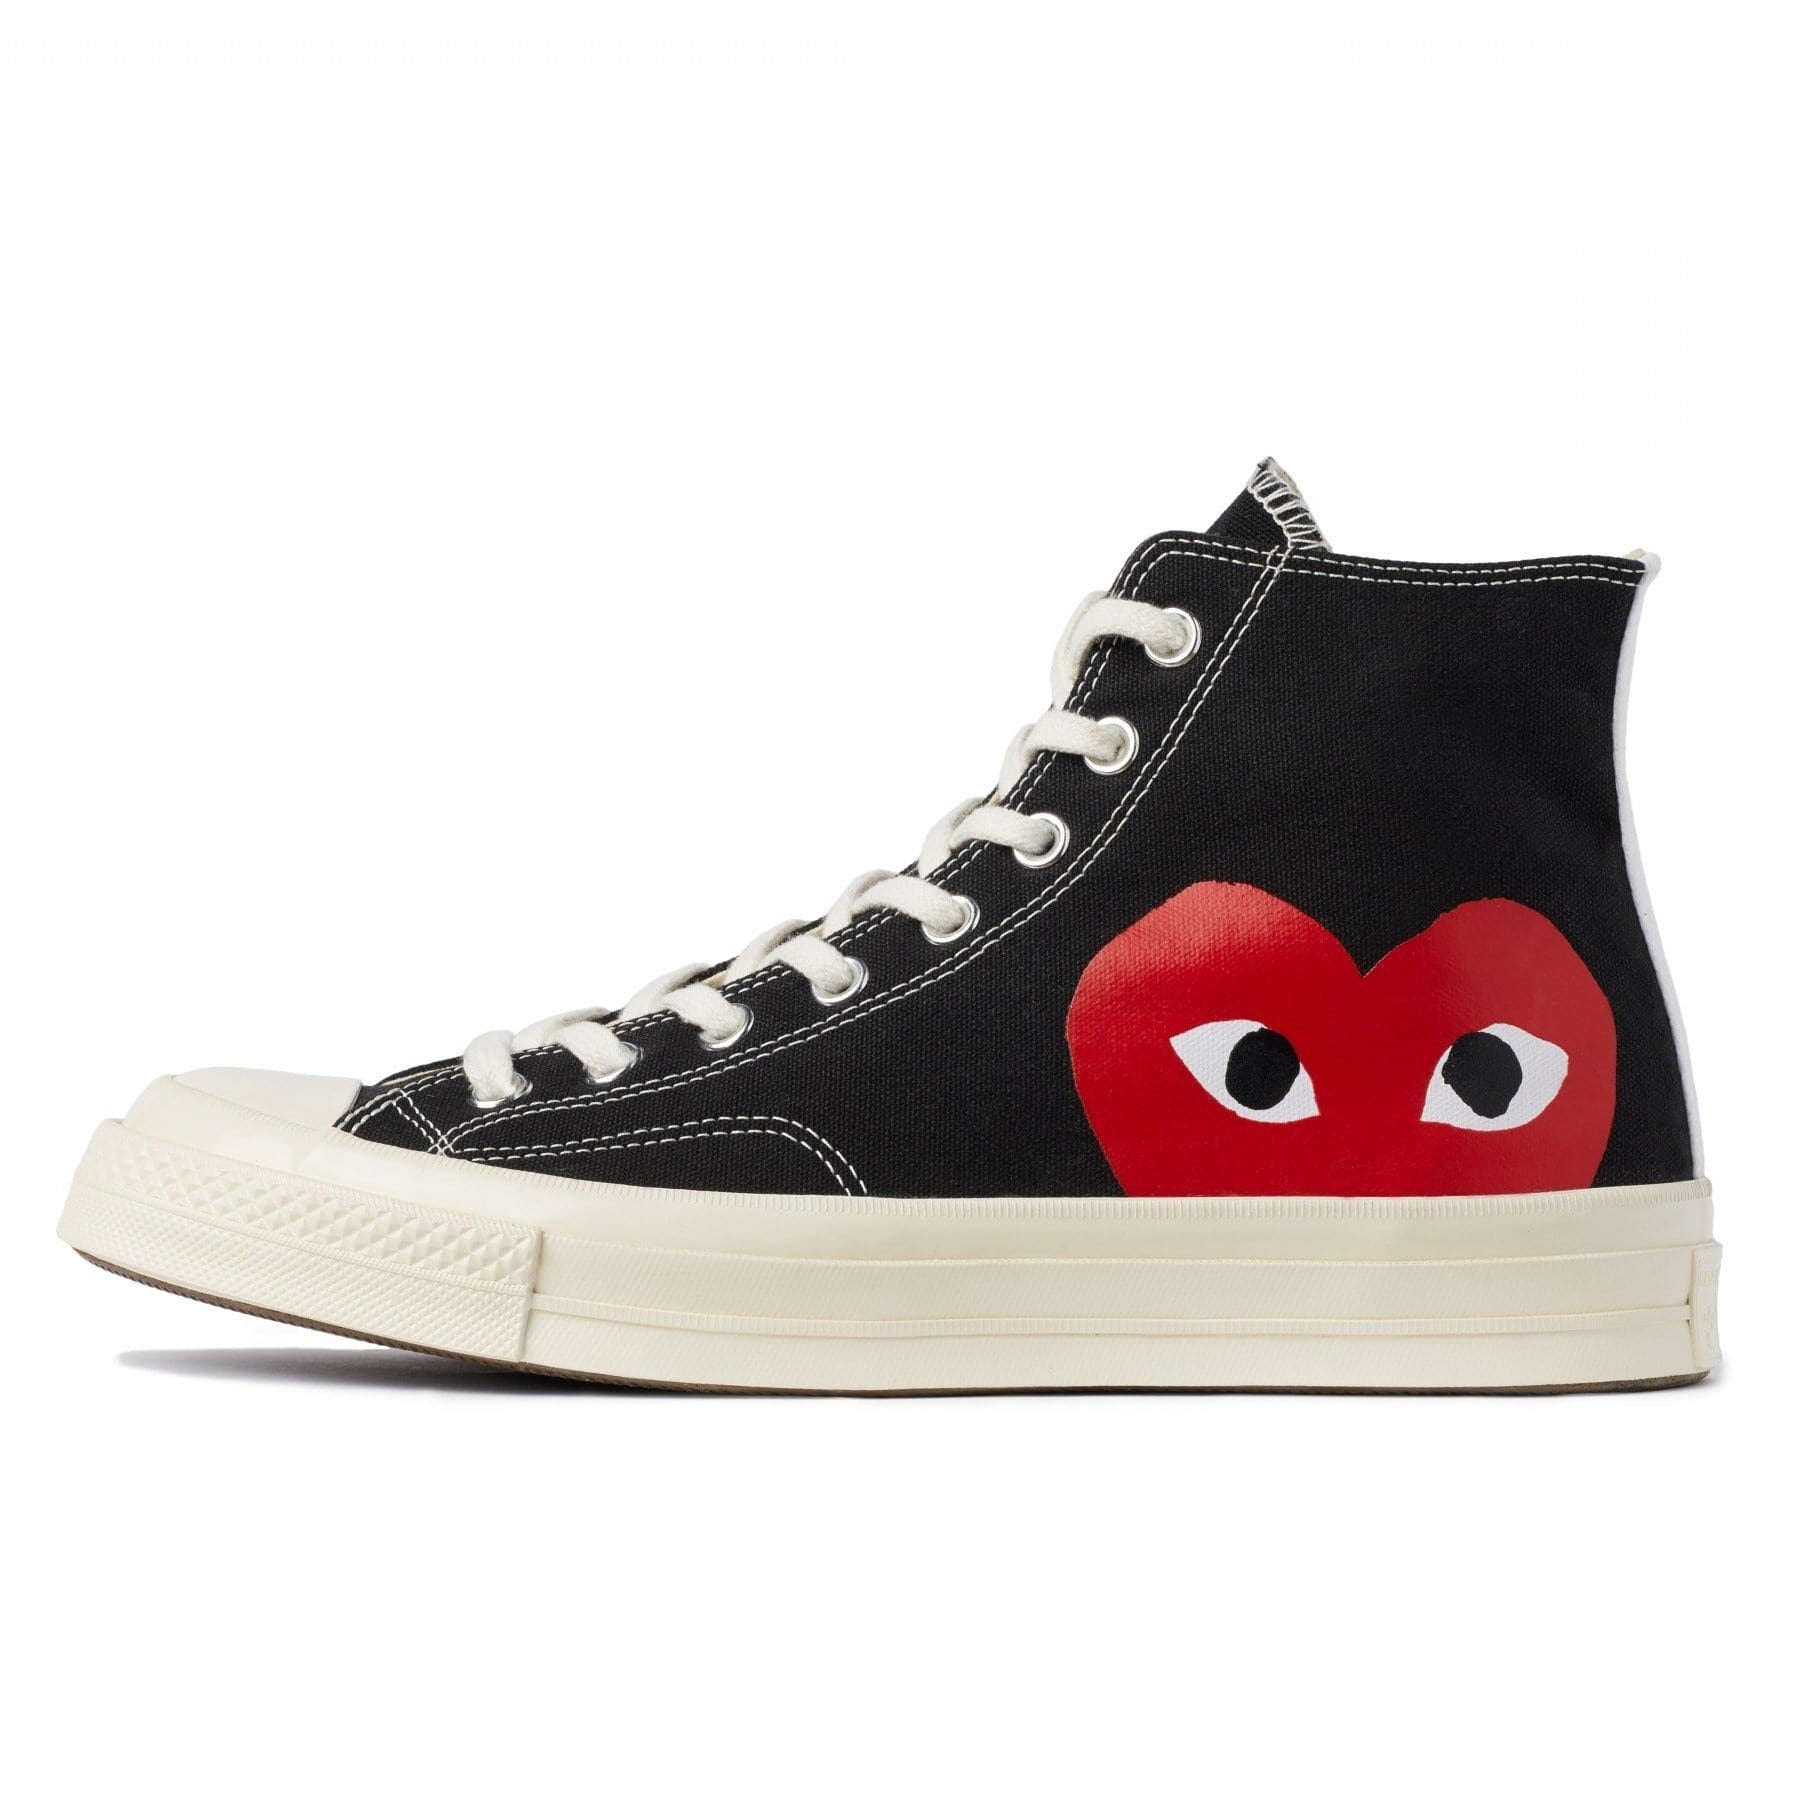 CDG PLAY x Converse Chuck Taylor 1970s High ''BLACK''